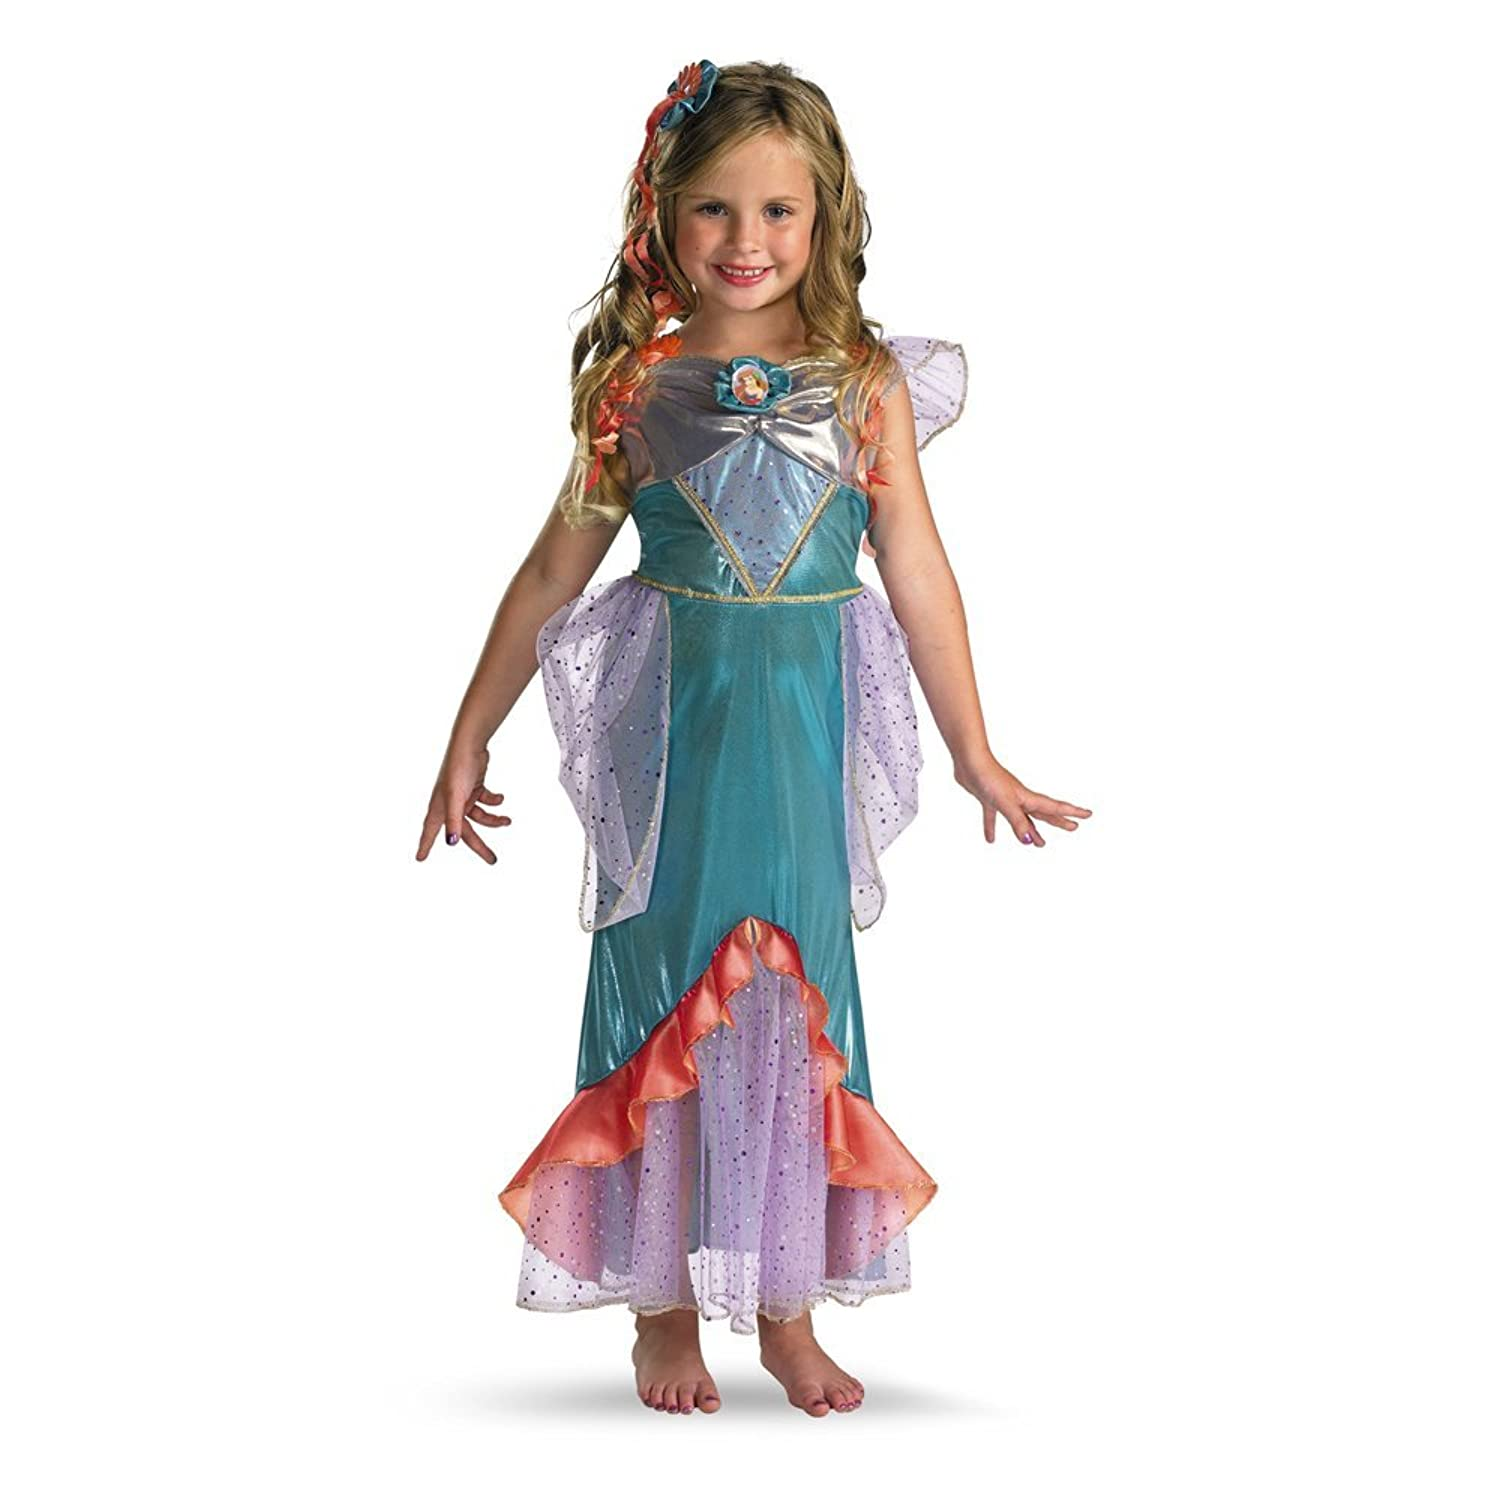 Amazon.com: The Little Mermaid Ariel Deluxe Toddler / Child Costume ...